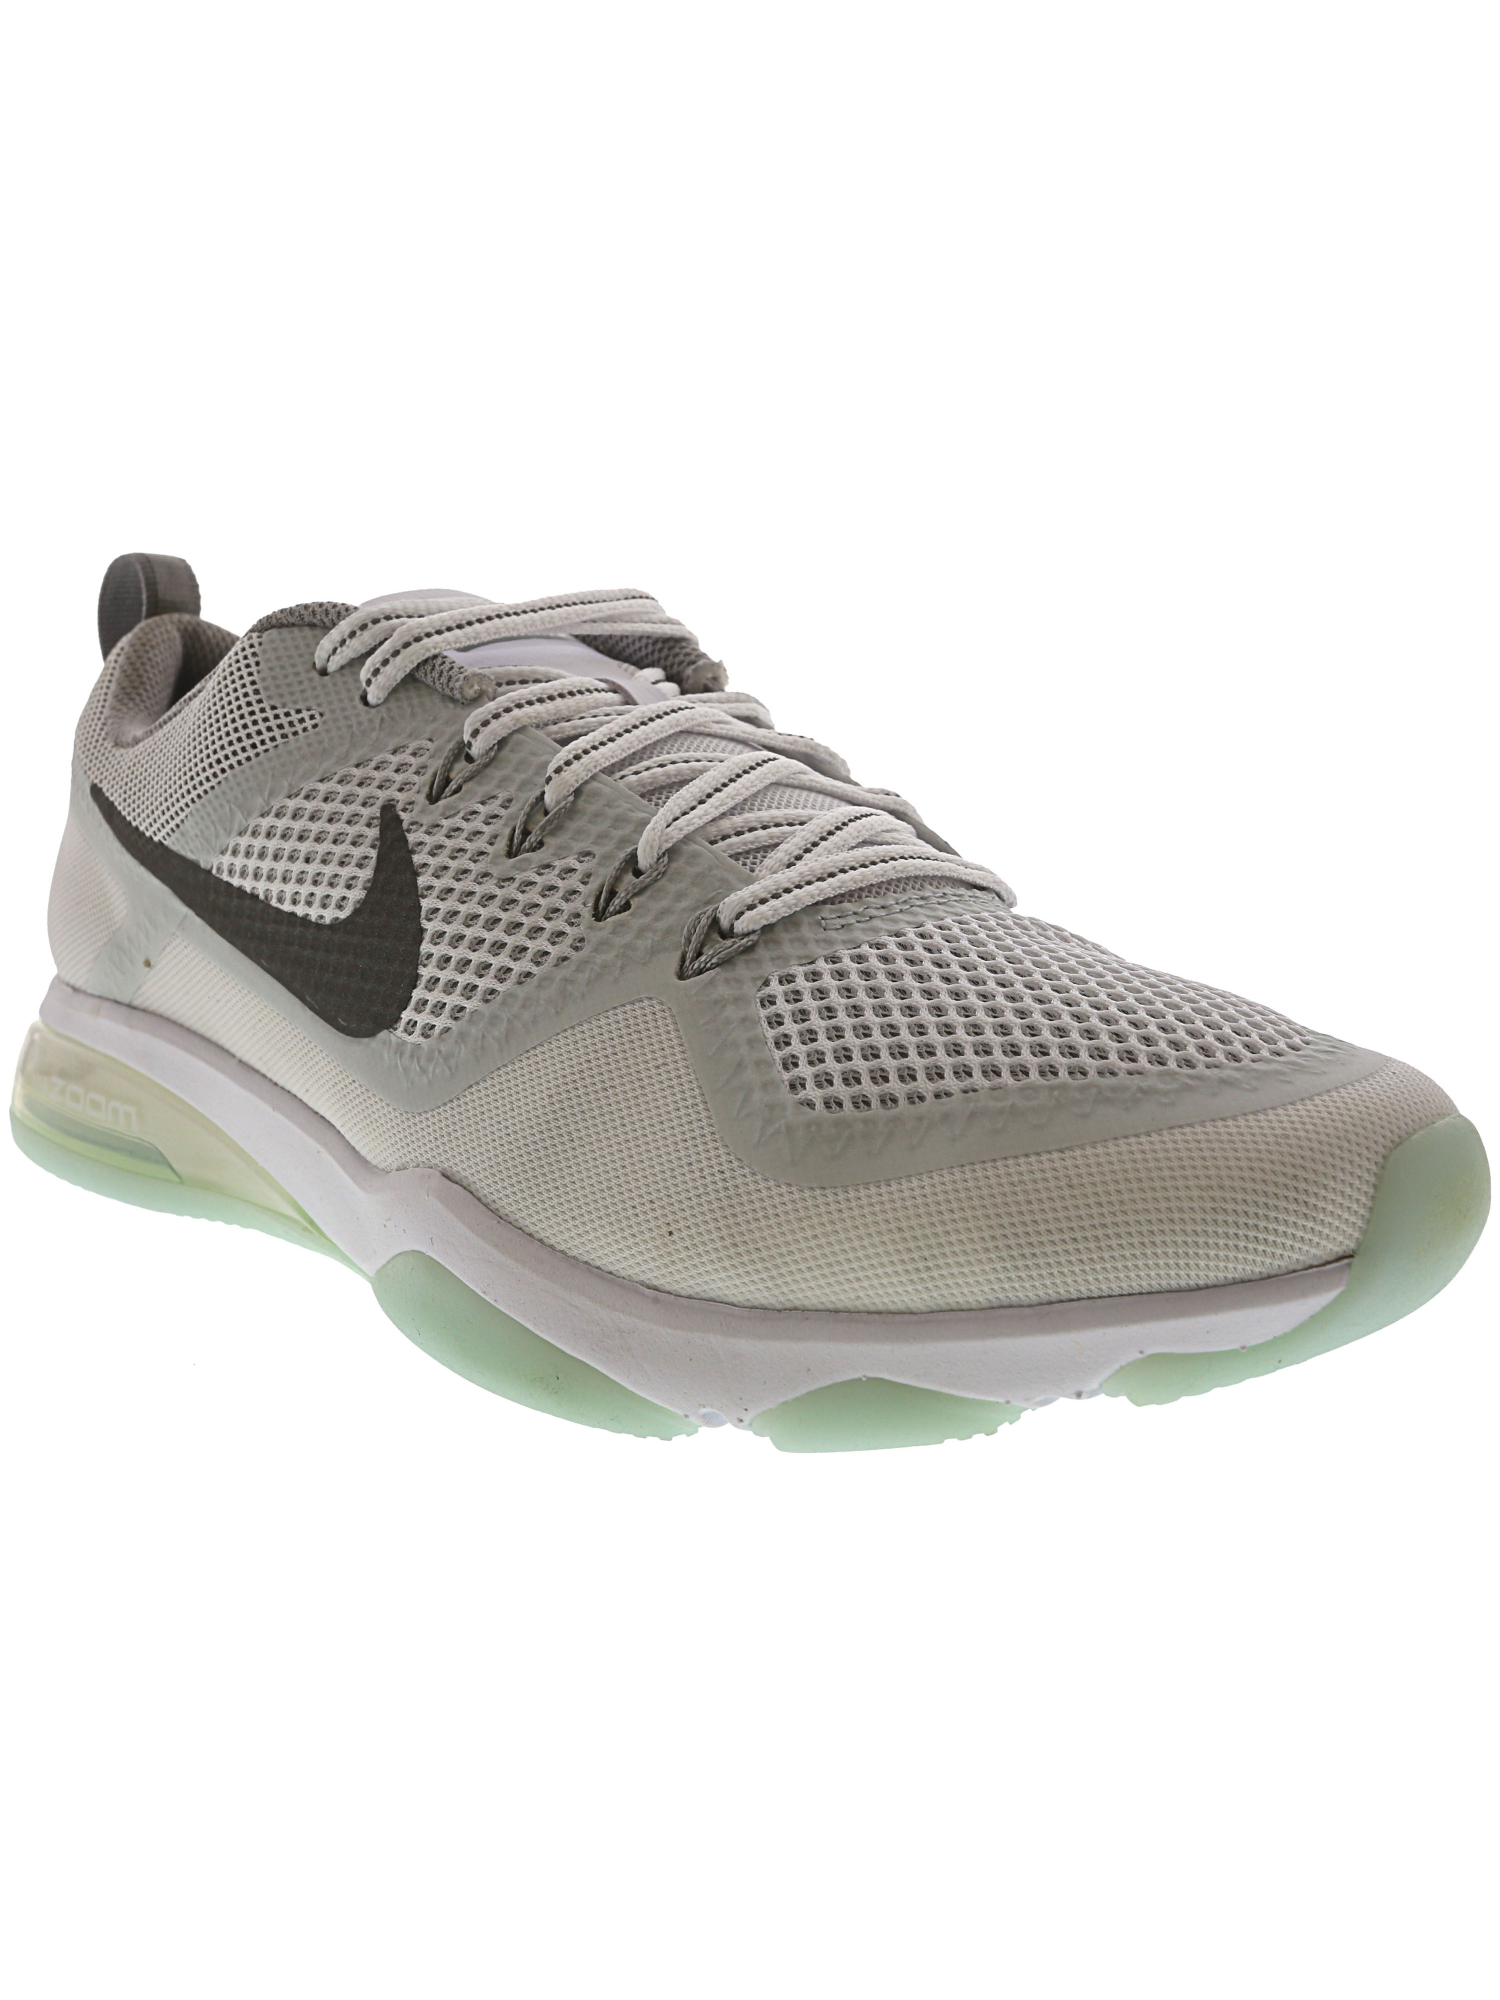 b1230c59 ... Picture 2 of 4; Picture 3 of 4; Picture 4 of 4. Nike Women's Air Zoom  Fitness Reflect Ankle-High Training Shoes